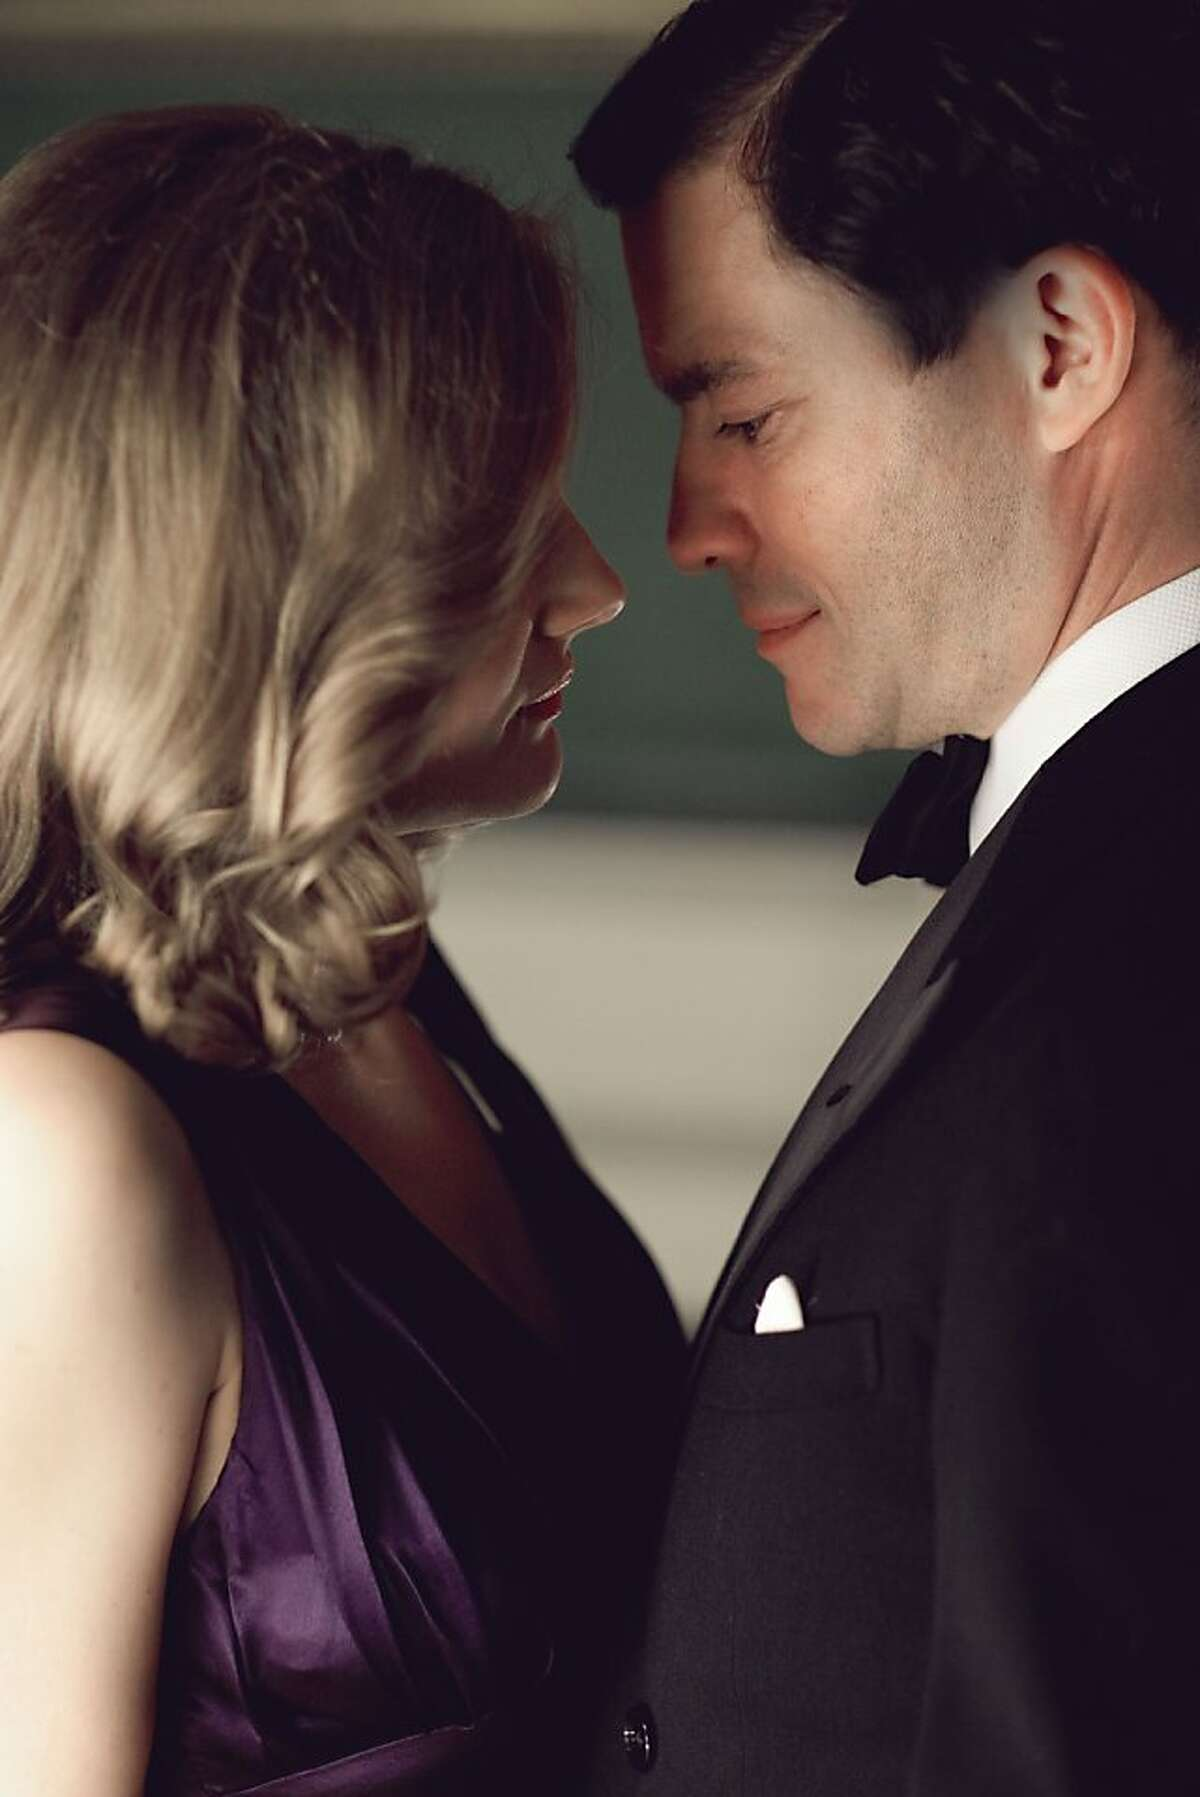 THE HOUR Episode 3 Bel Rowley (Romola Garai) and Madden (Dominic West)